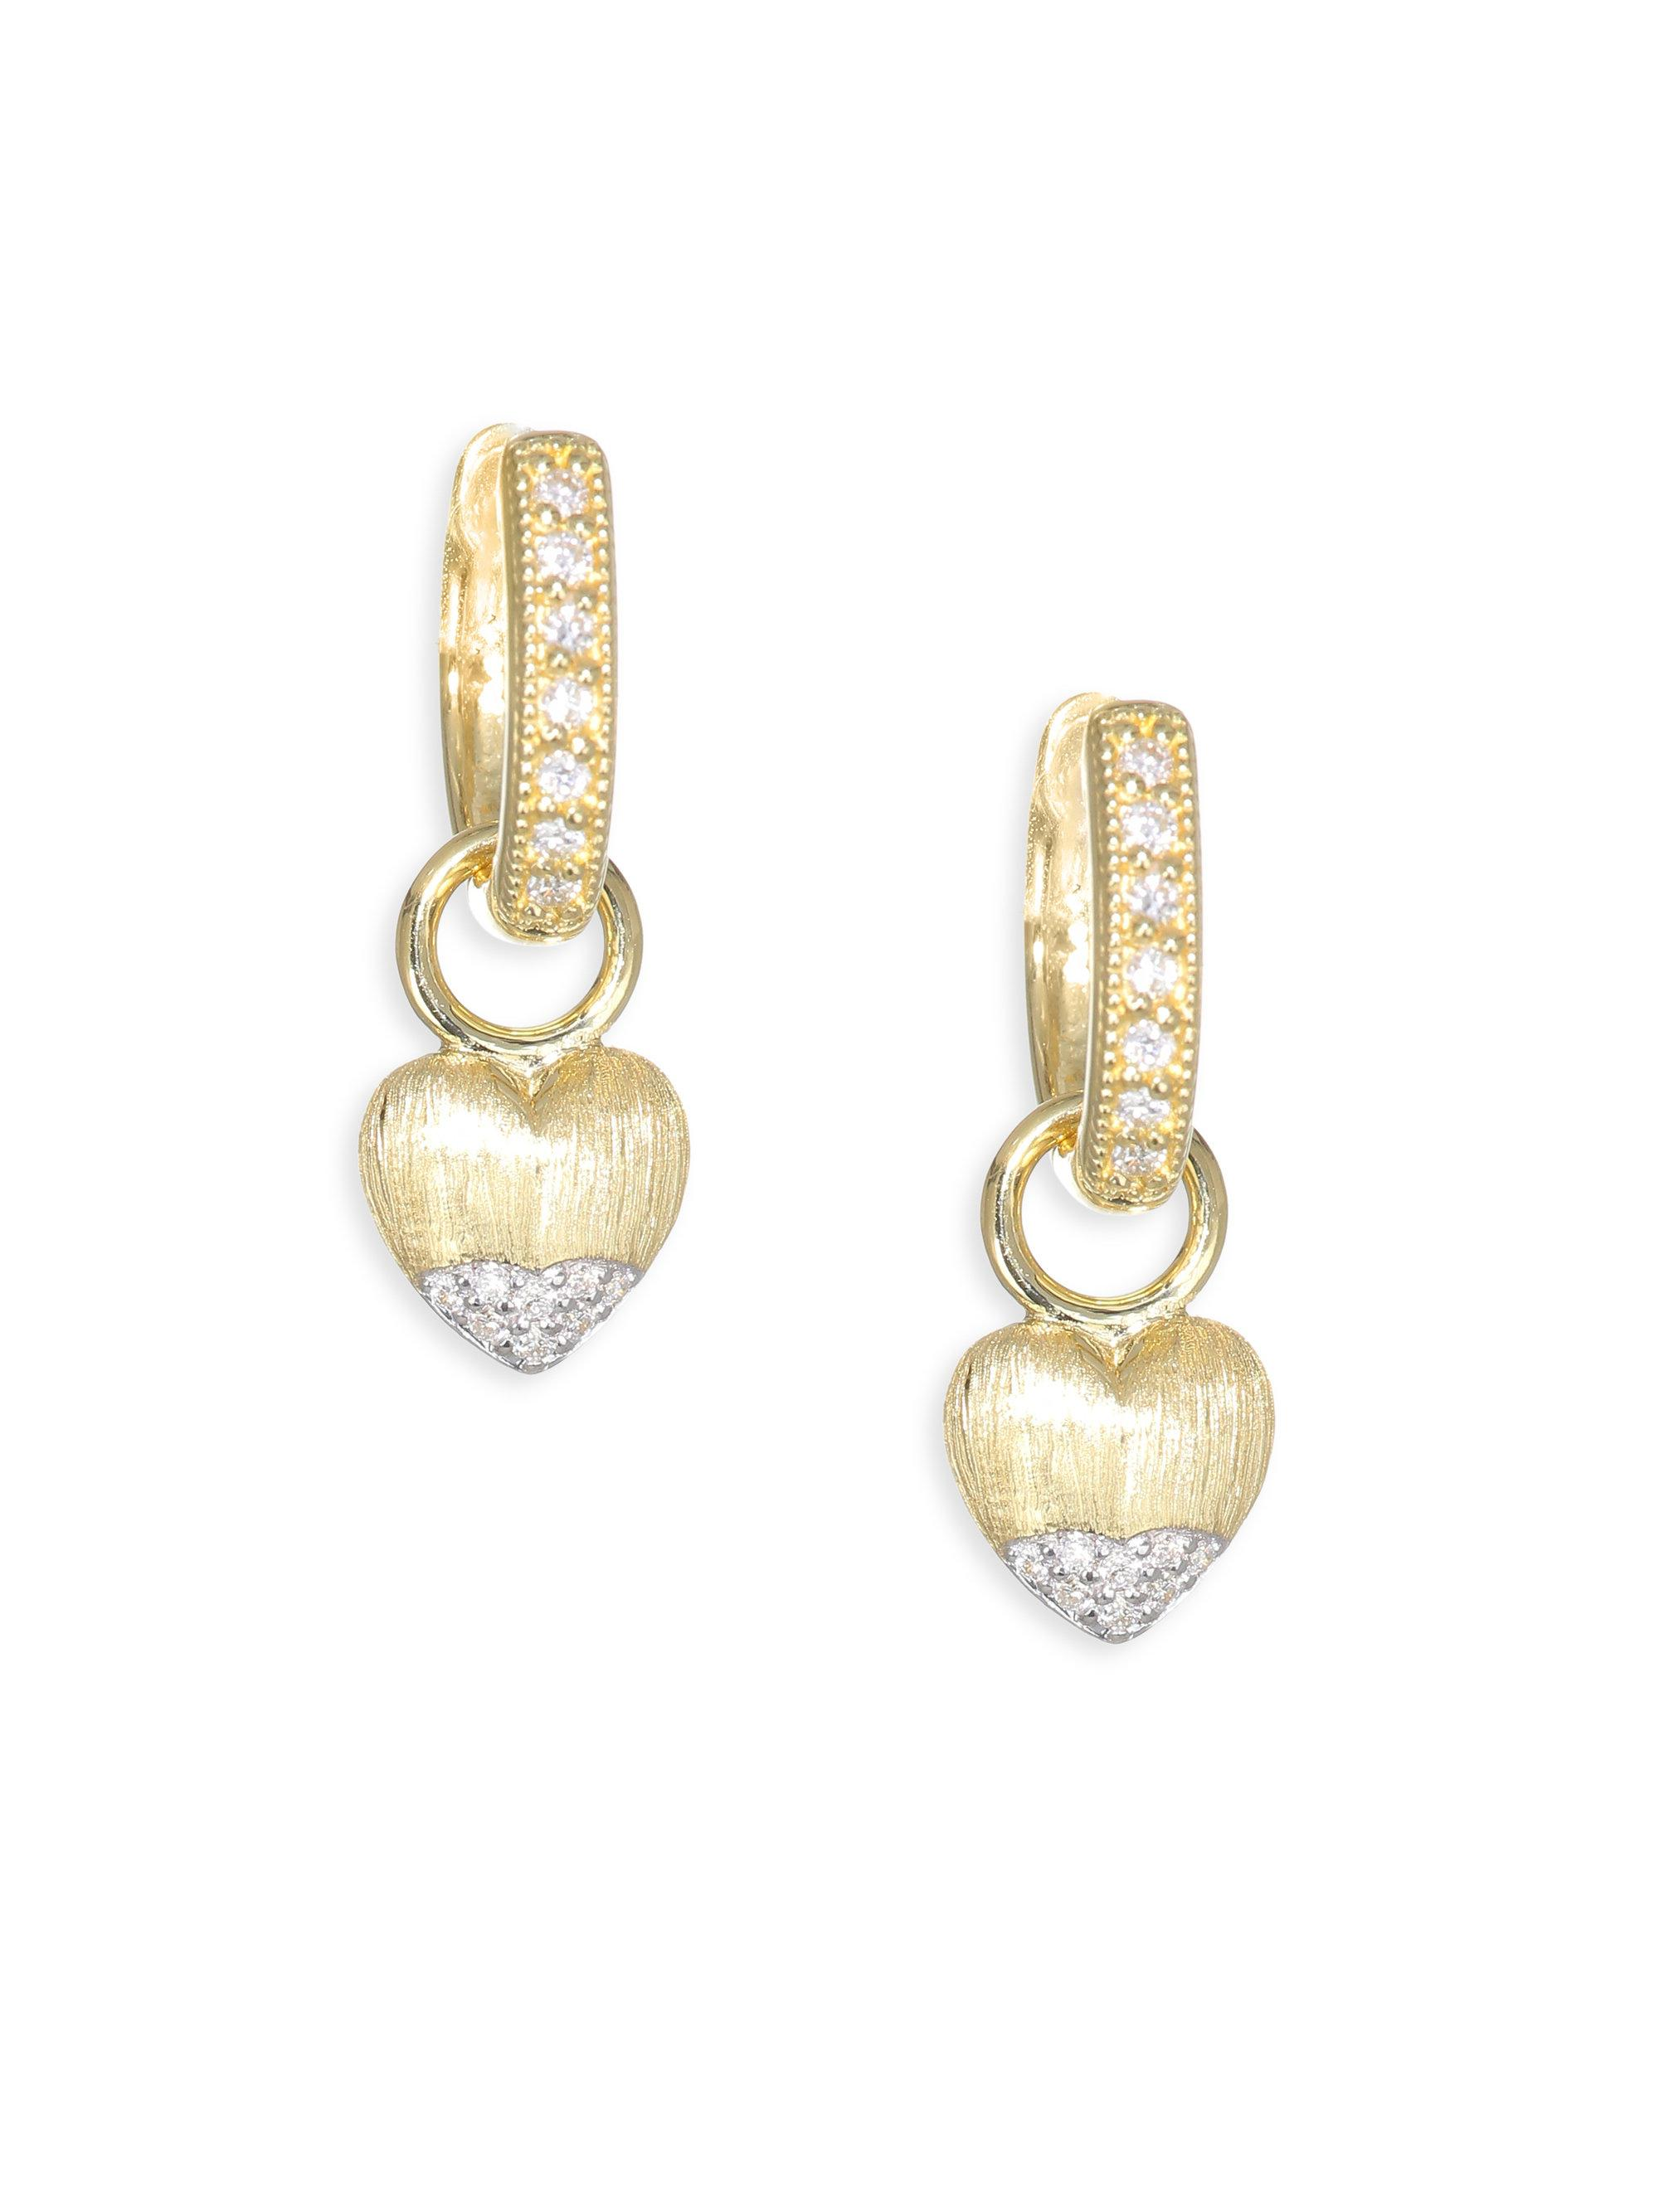 Jude Frances Lisse Large Pearl & Diamond Earring Charms cDrIDcNGmu